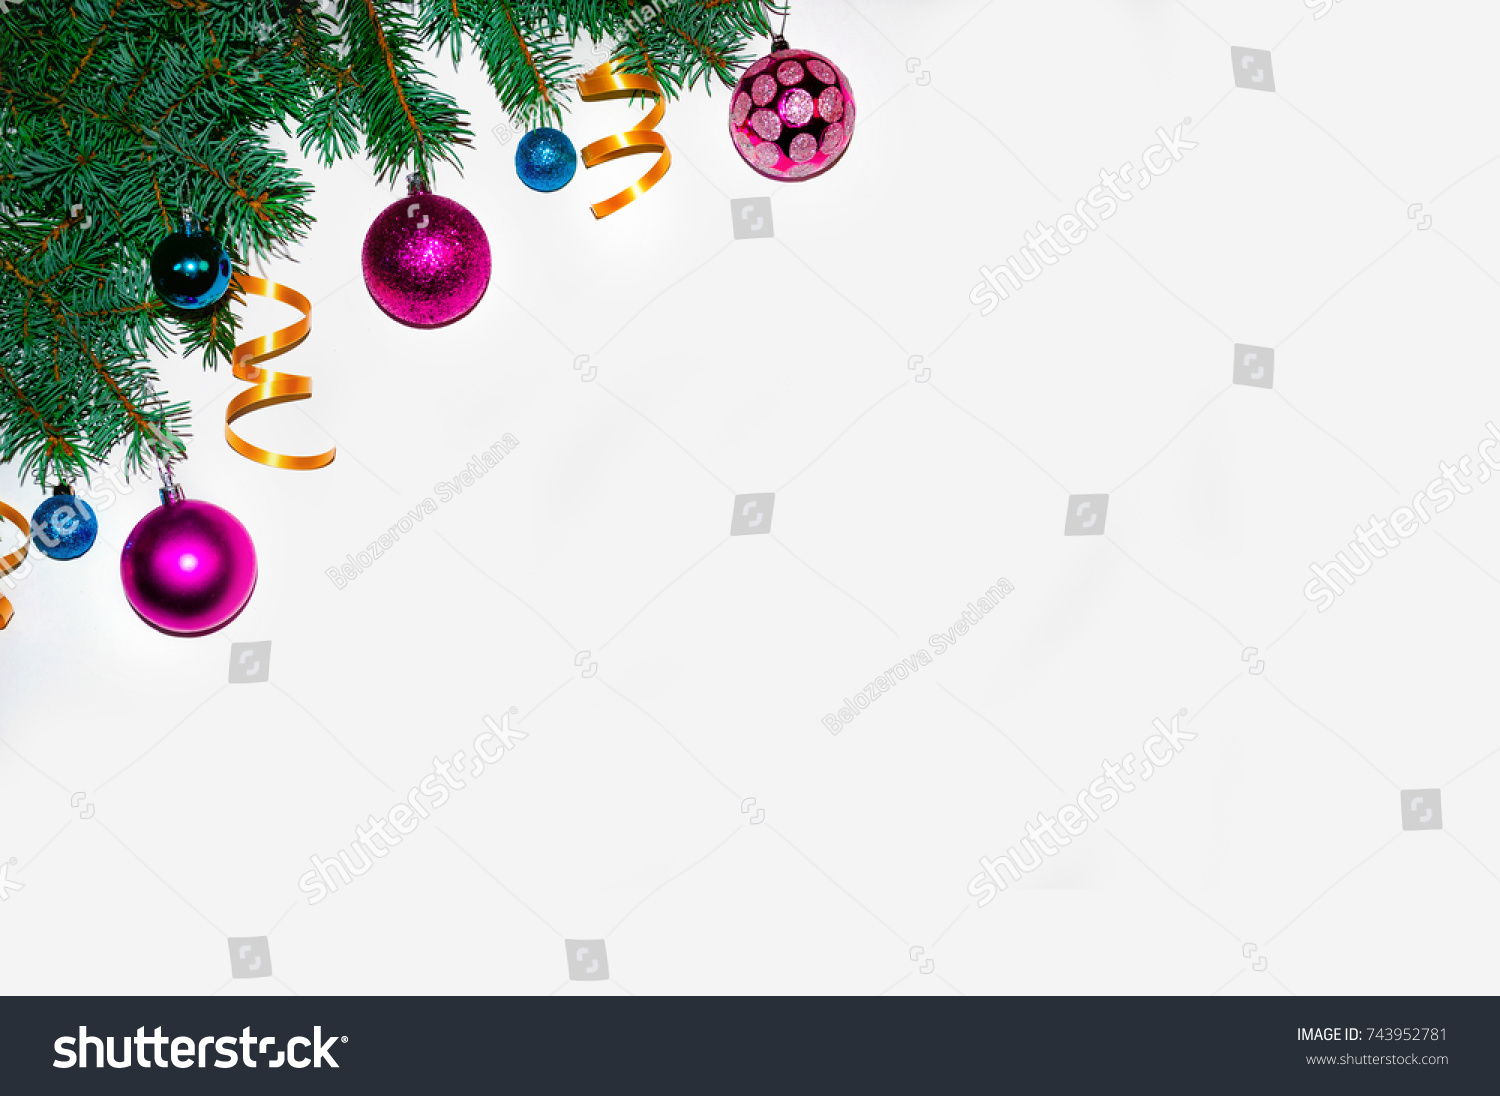 christmas background frame made of fir branches new years toys wallpapers flat